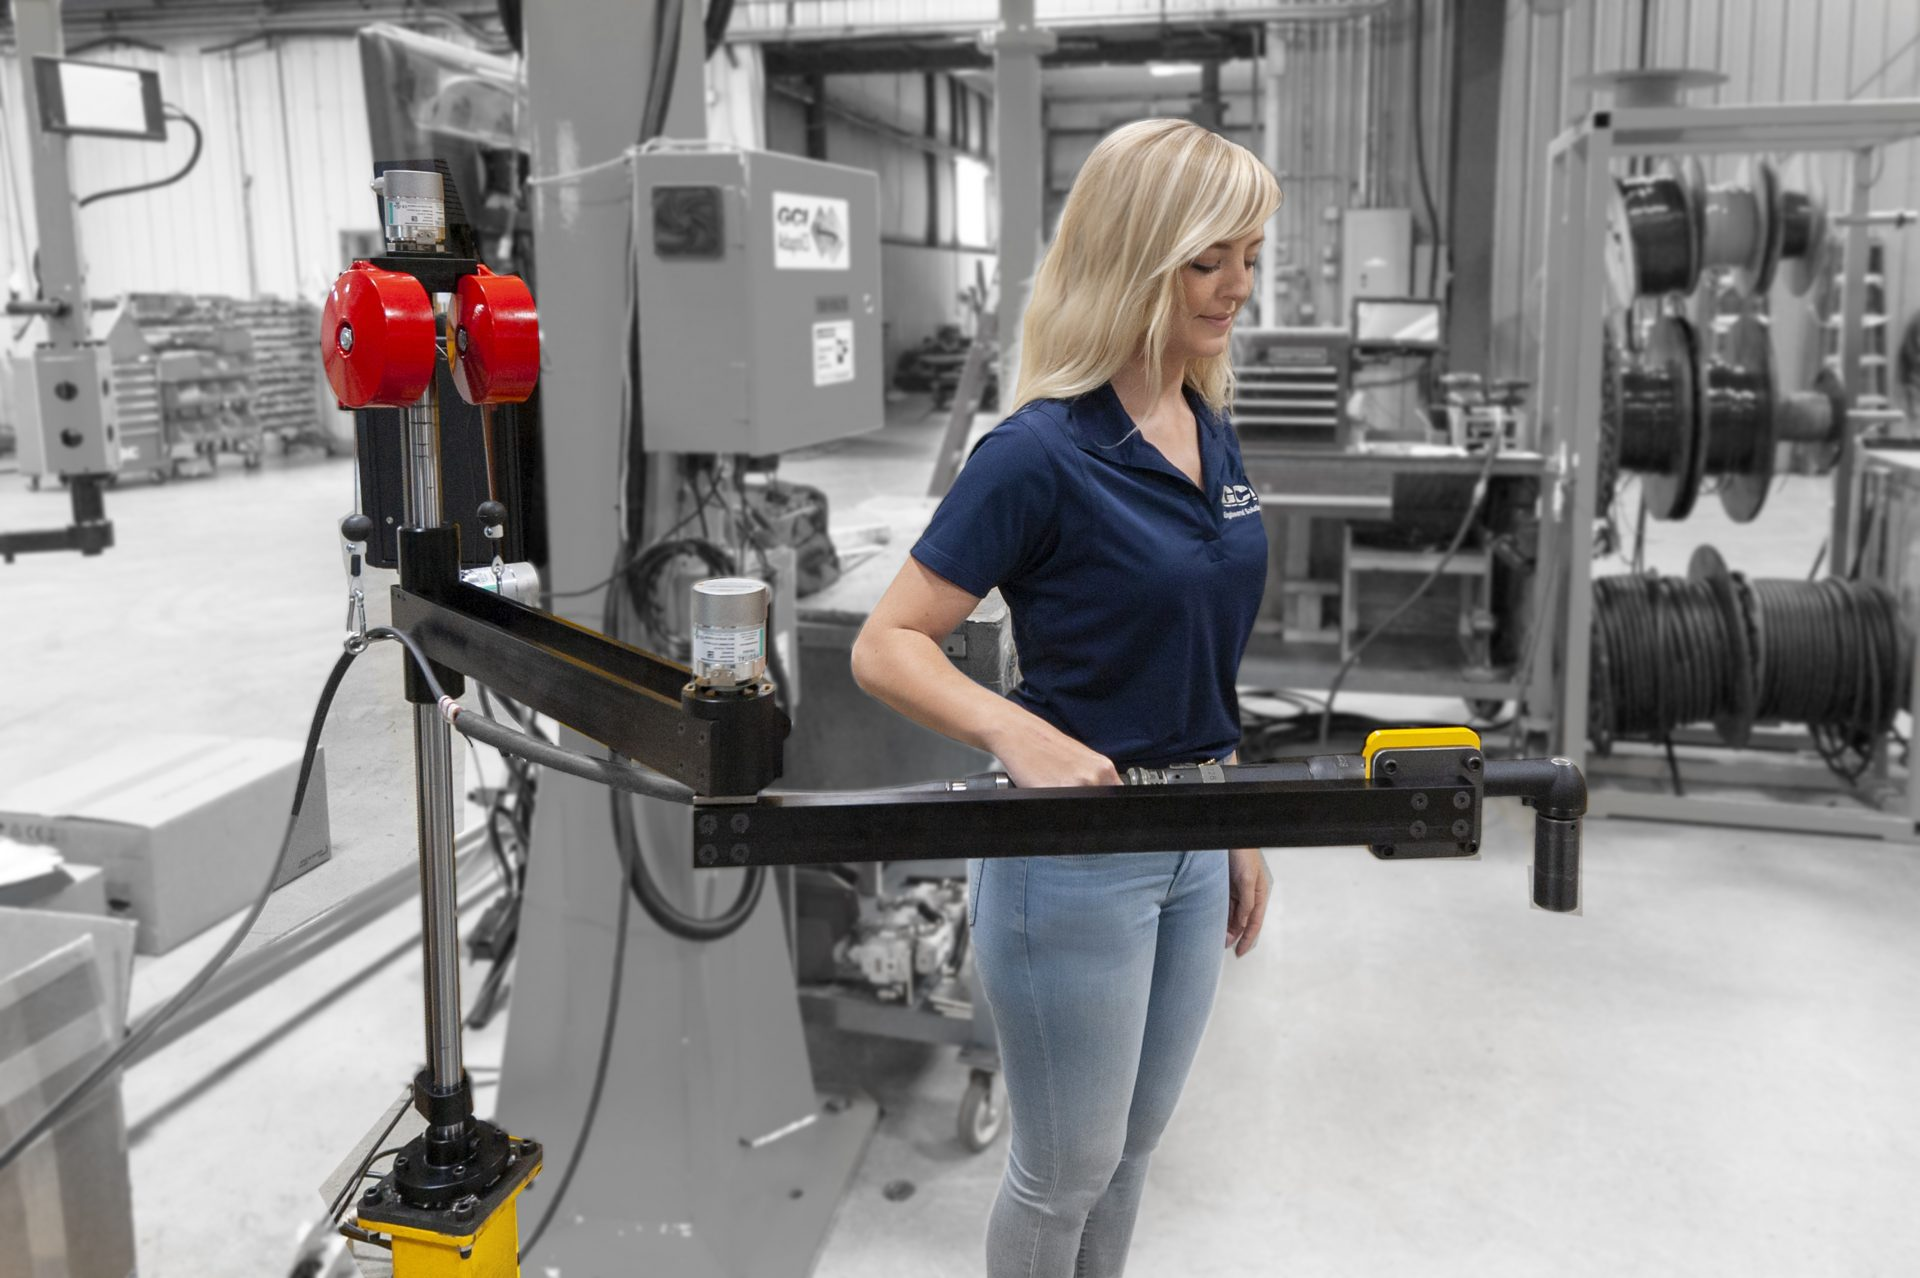 Woman operates a 150 NM aluminum torque reaction arm